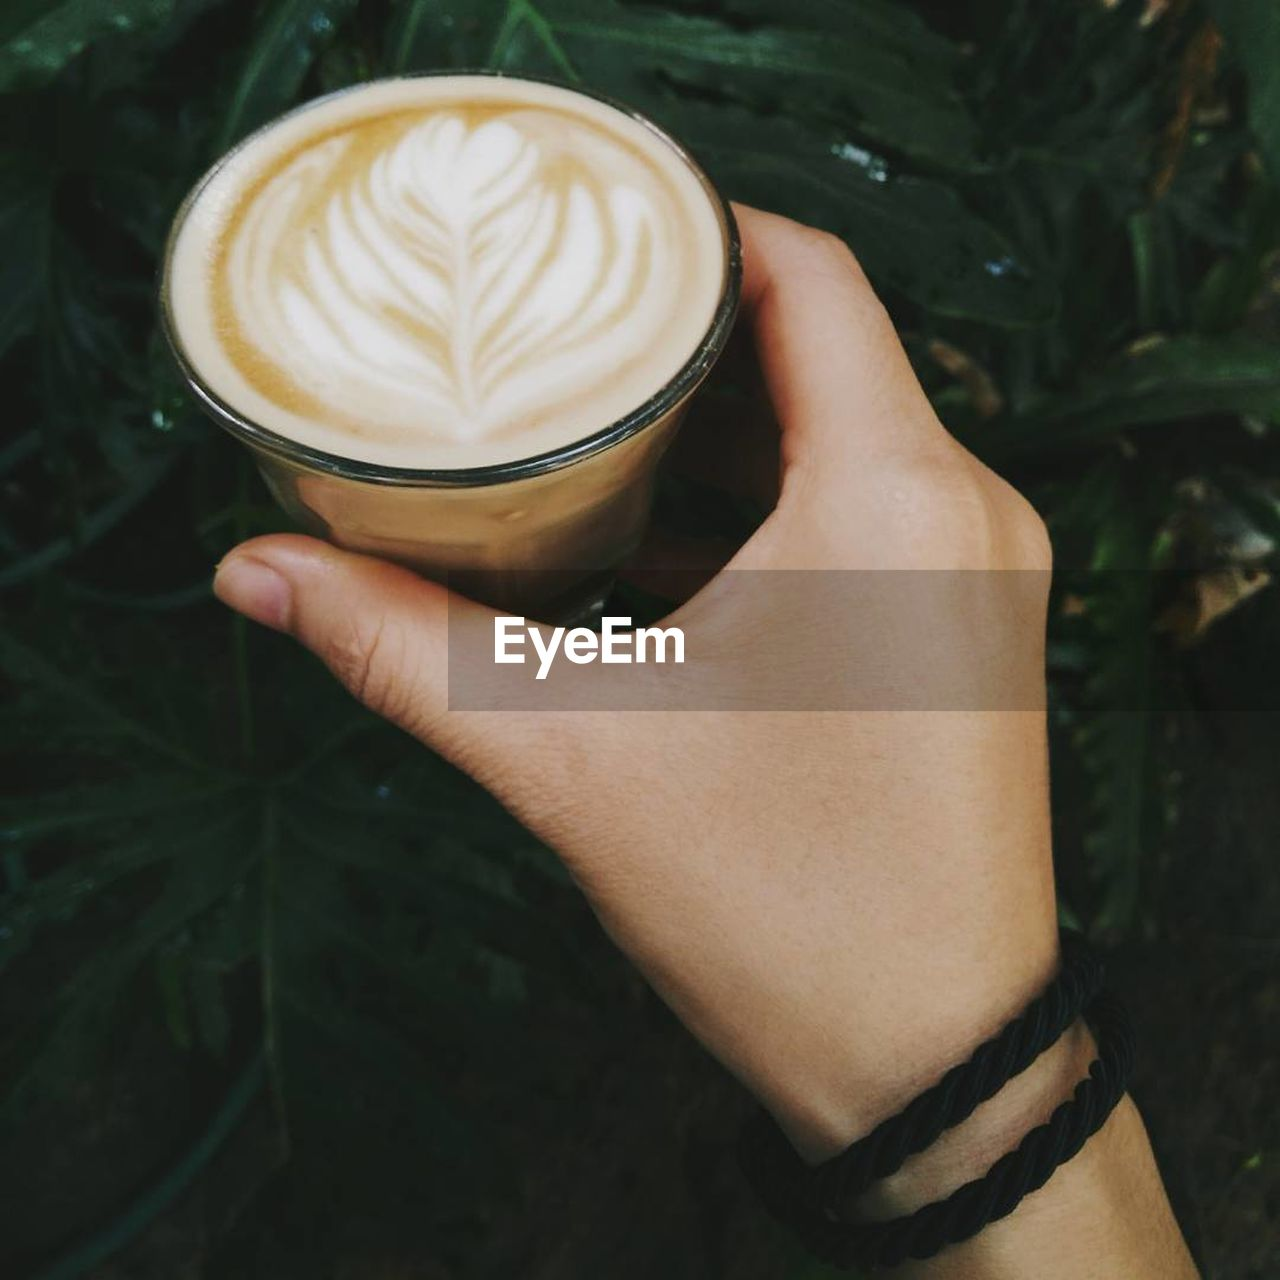 human hand, coffee, coffee - drink, coffee cup, hand, food and drink, drink, mug, cup, frothy drink, one person, real people, refreshment, holding, human body part, leaf, lifestyles, hot drink, froth art, cappuccino, latte, finger, crockery, non-alcoholic beverage